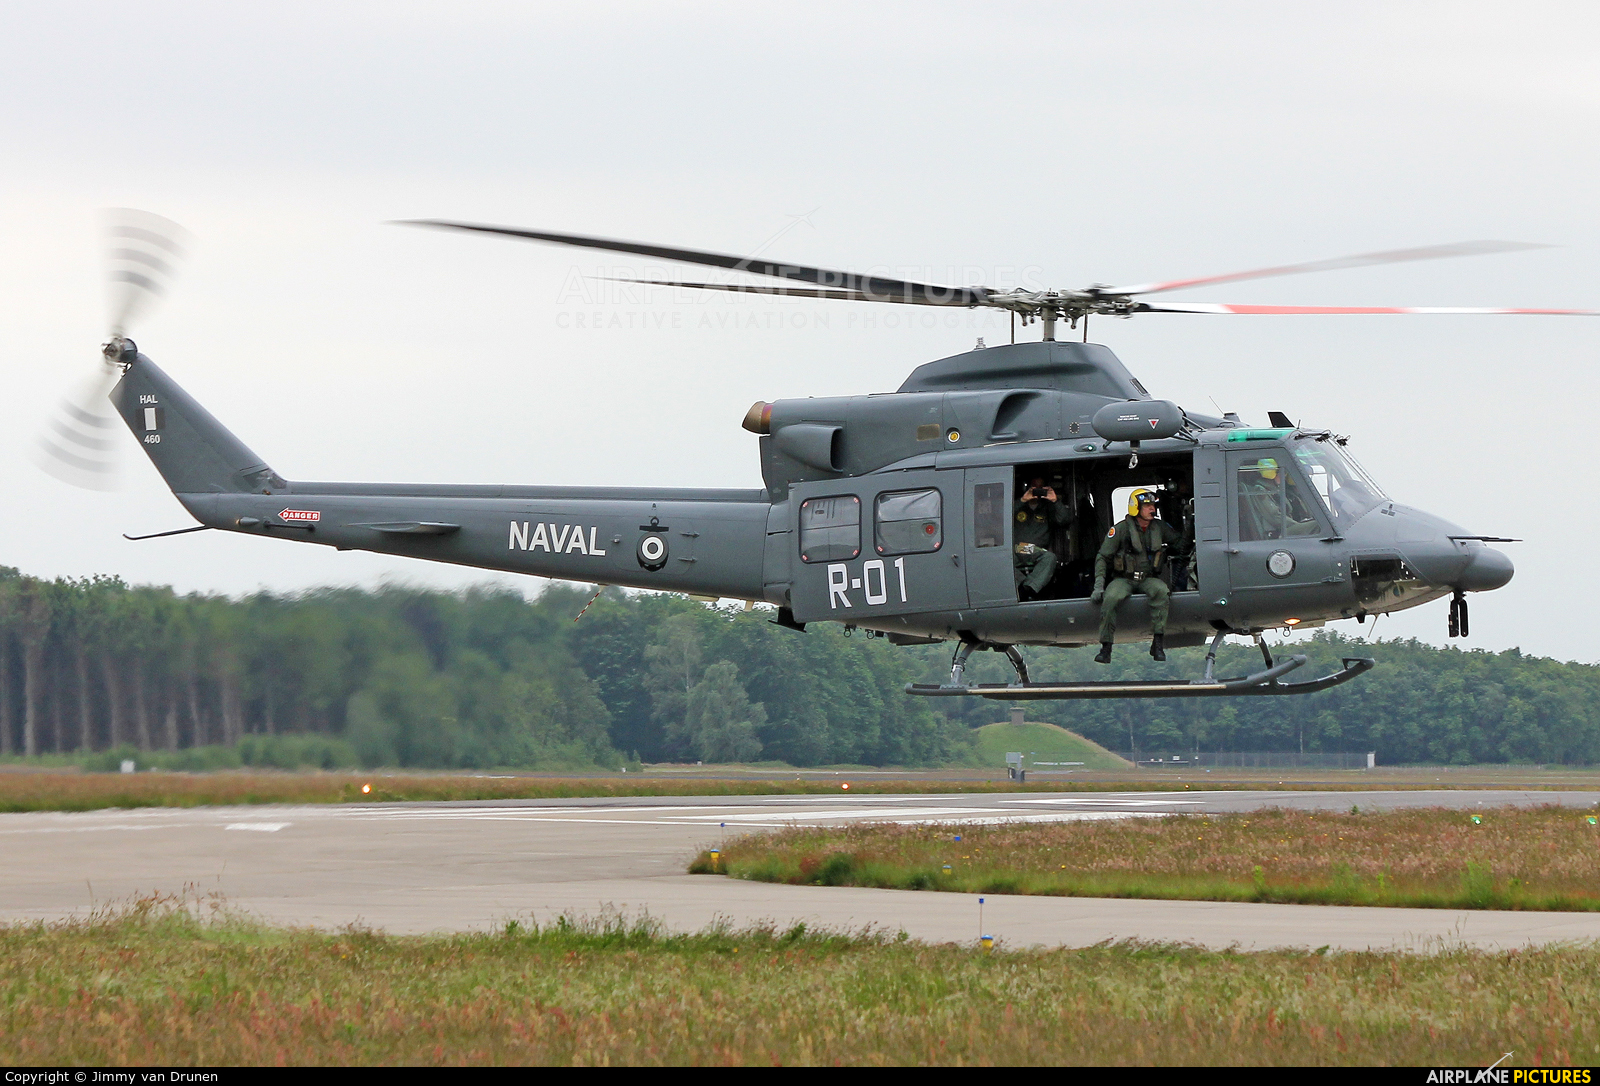 most advanced helicopters with R 01 Peru Navy Agusta Agusta Bell Ab 412 on R 01 Peru Navy Agusta Agusta Bell Ab 412 as well N237ac Erickson Air Crane Sikorsky S 64f Skycrane in addition H120 26 besides Watch furthermore Which Military Ranks Southeast Asia S Strongest.